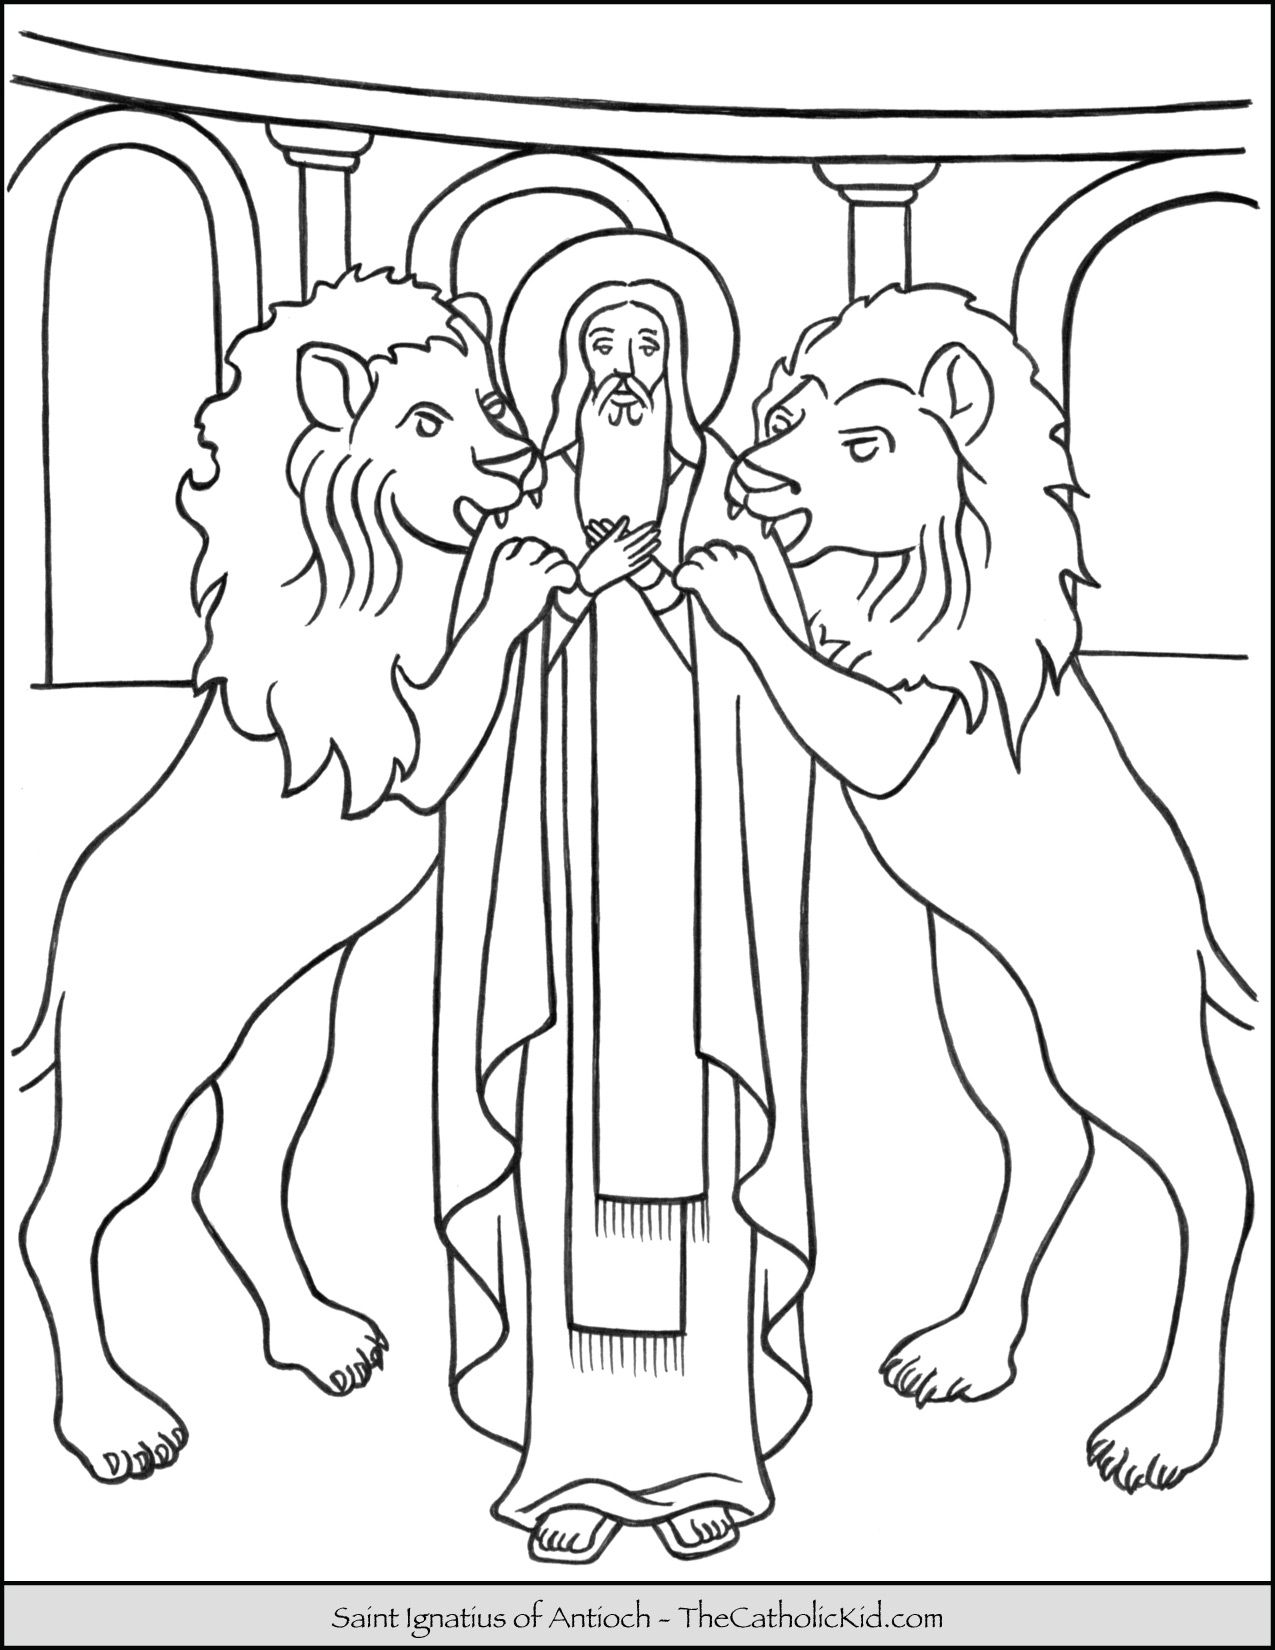 Saint Ignatius Of Antioch Coloring Page Thecatholickid Com